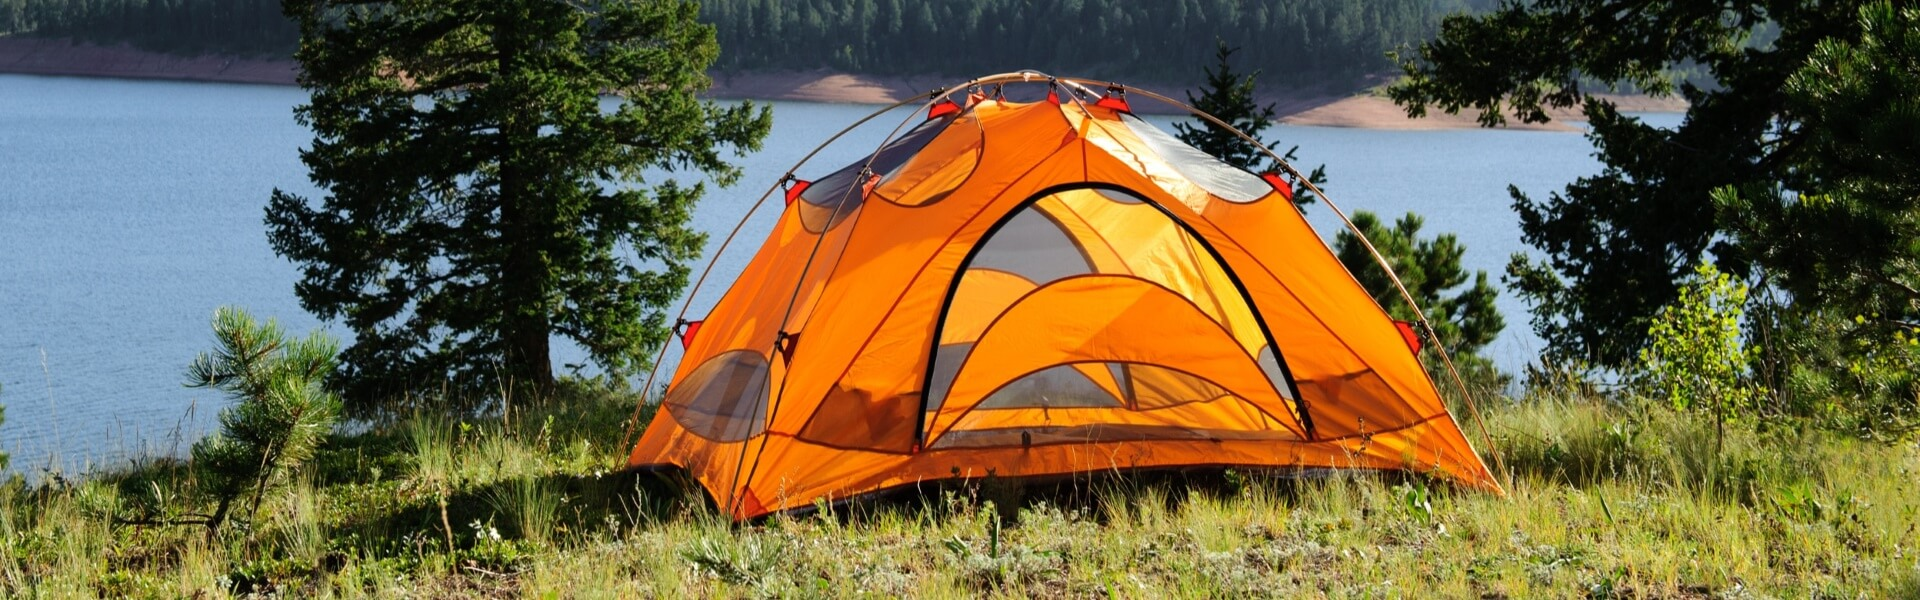 Best Camping Tents Top Rated and Reviewed